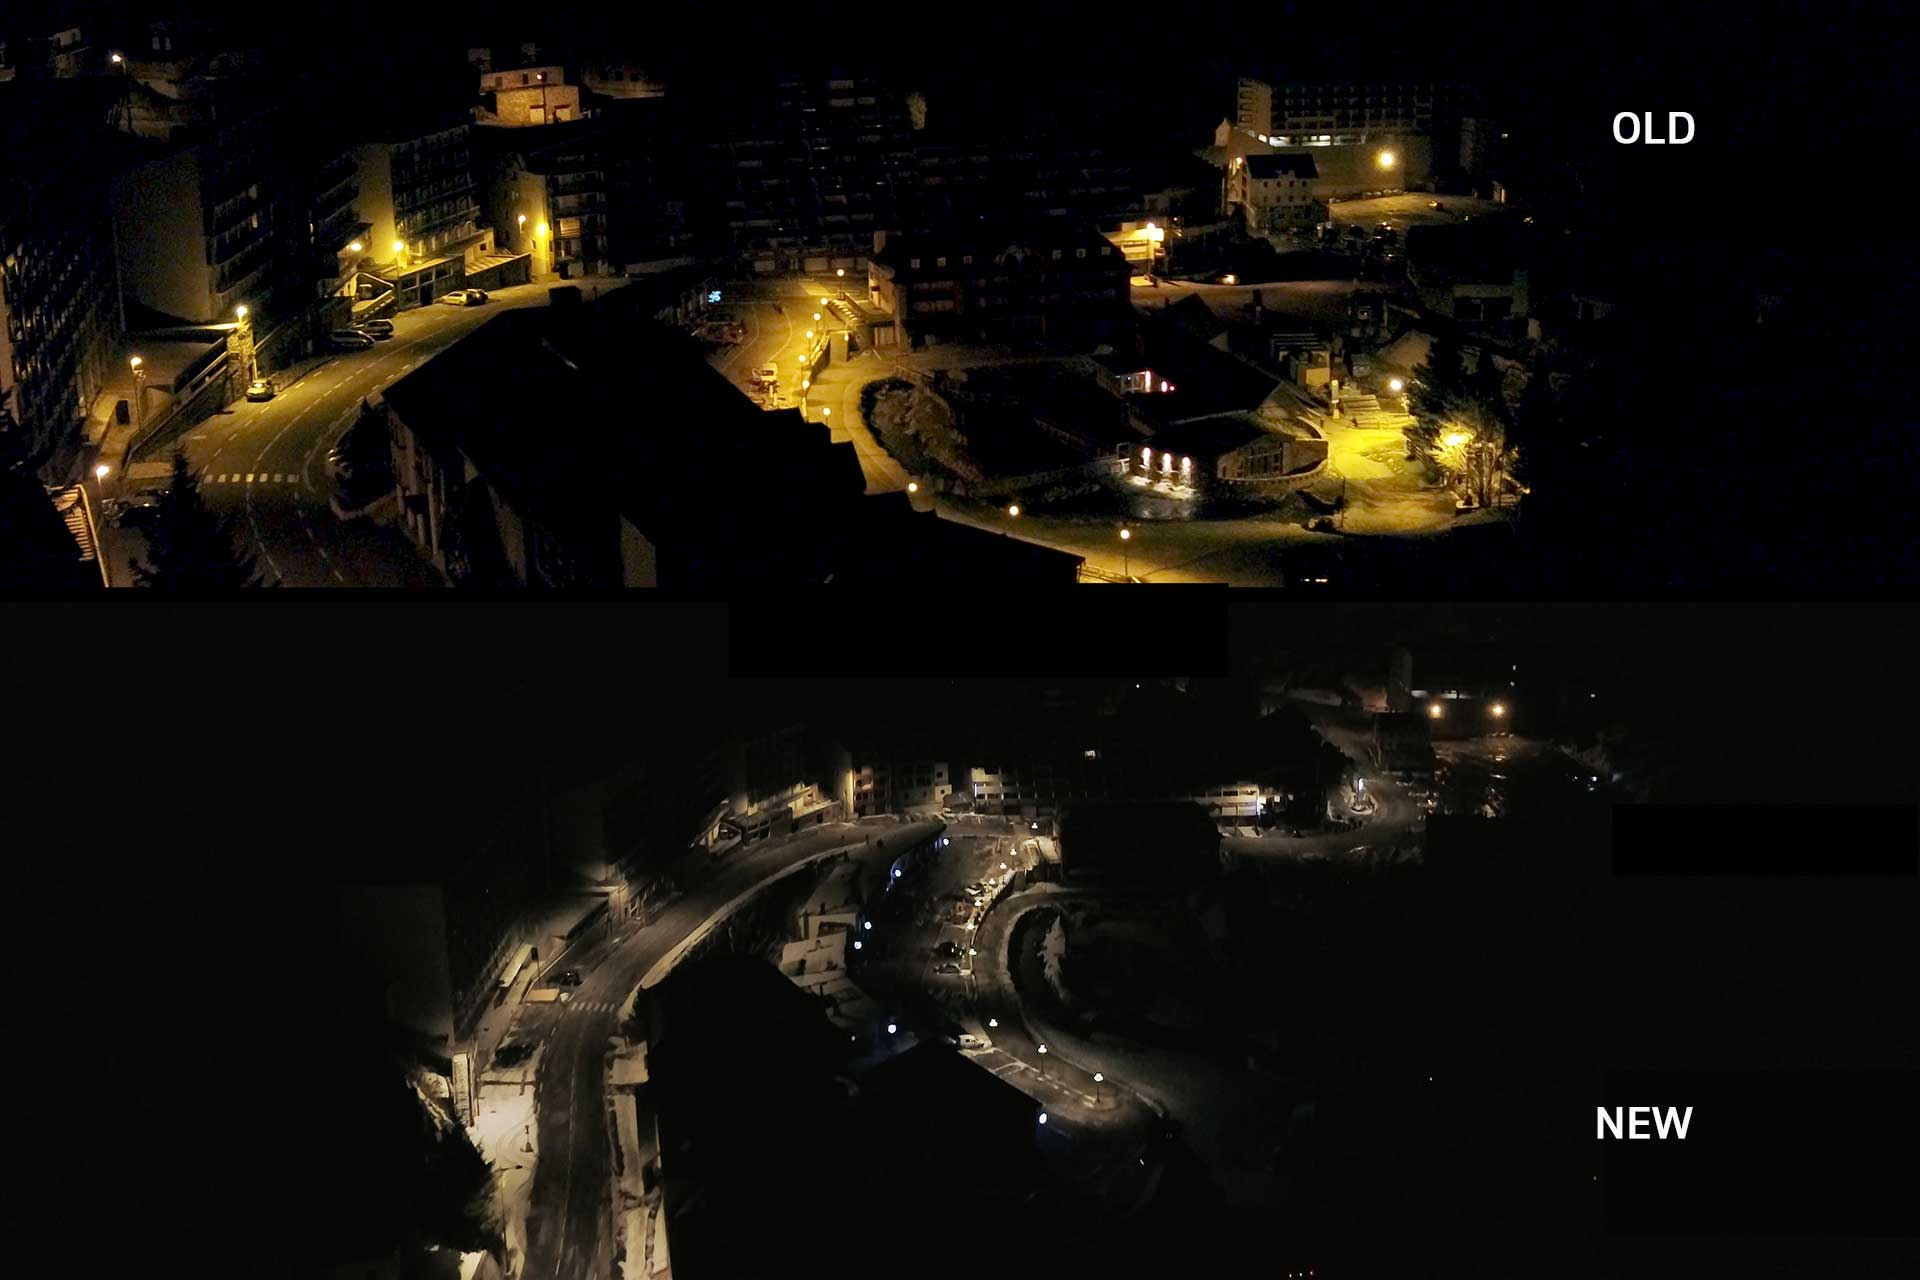 Smart lighting from Schréder has not only reduced the light pollution for La Mongie but also improved the quality in the streets